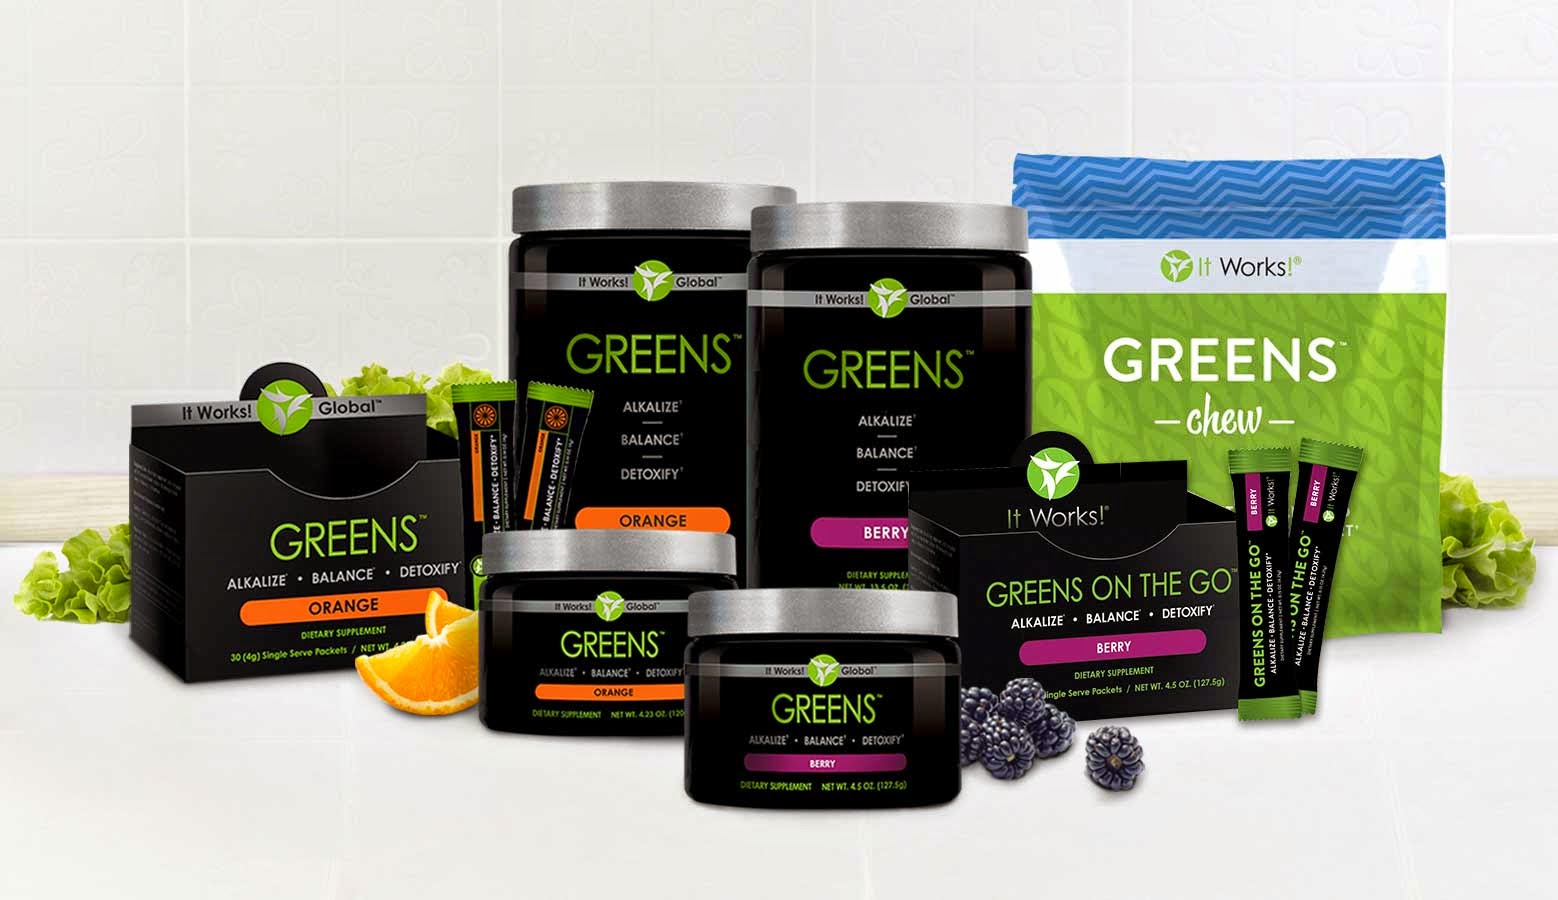 GET YOUR GREENS ON THE GO